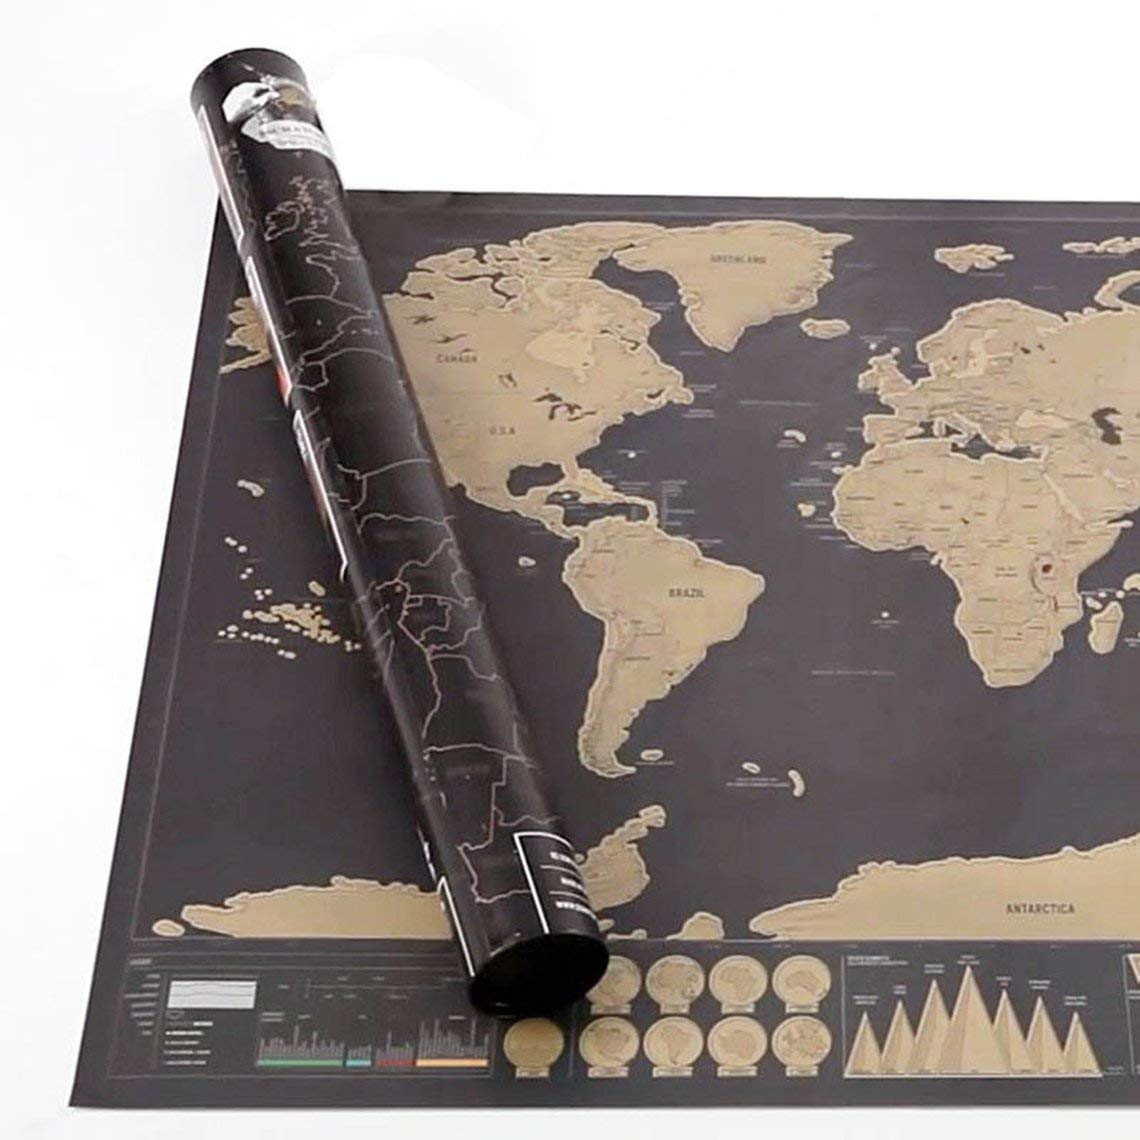 Zinniaya Gold Scratch Map Scratch Map Size Black Gold Black Luxury Edition World Map Perfect For Travelers Map Foil Coating